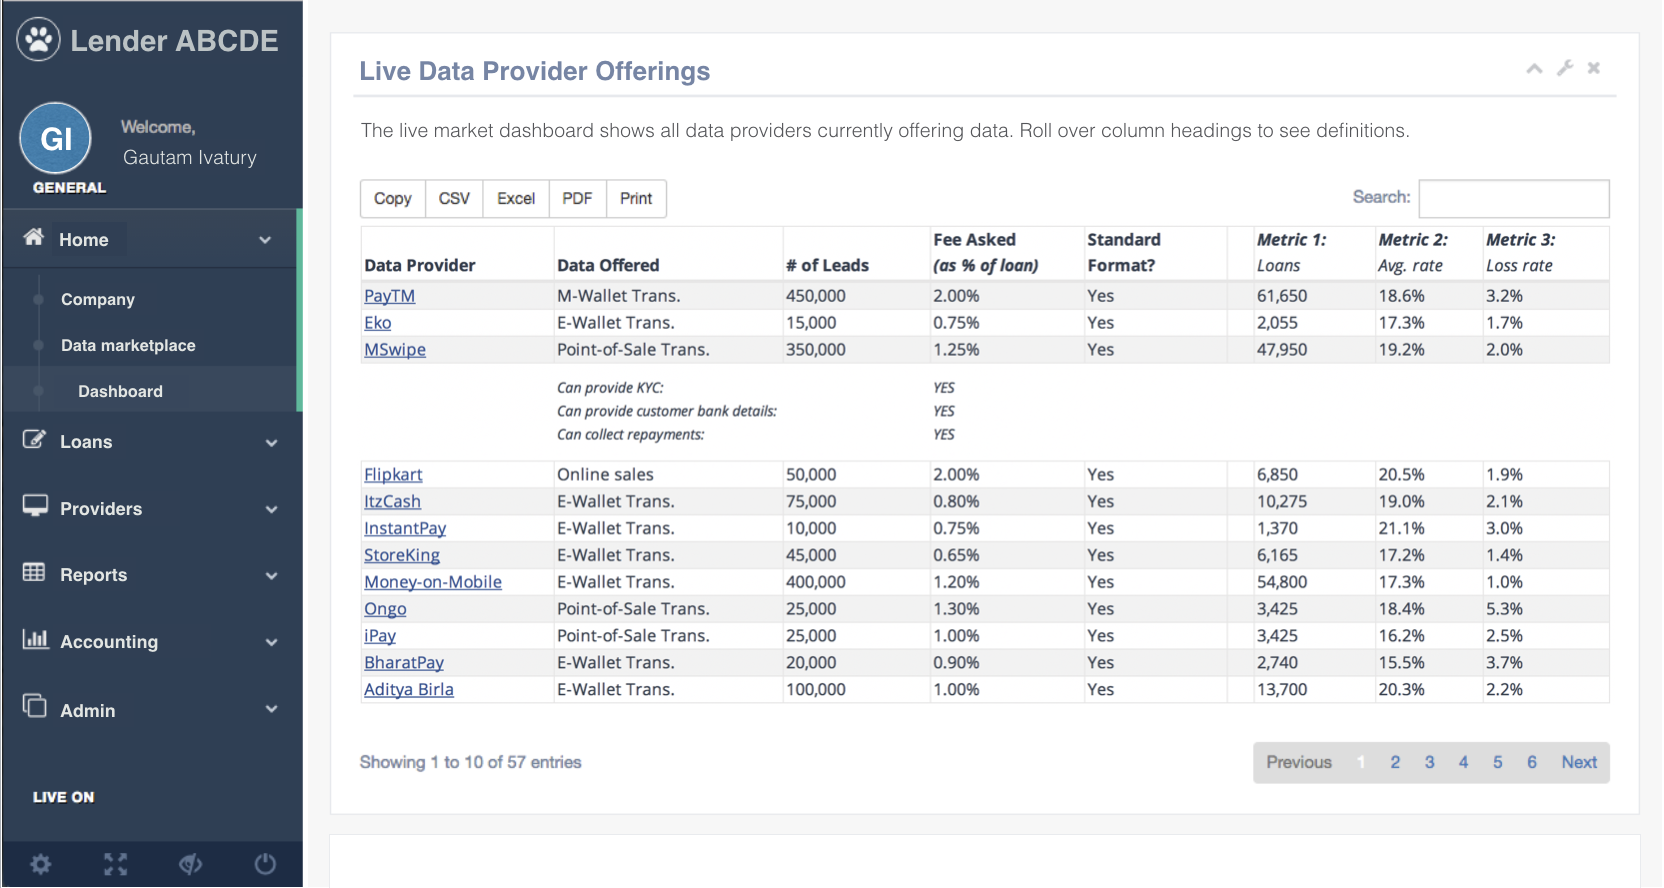 Lender view of indicative data provider offerings